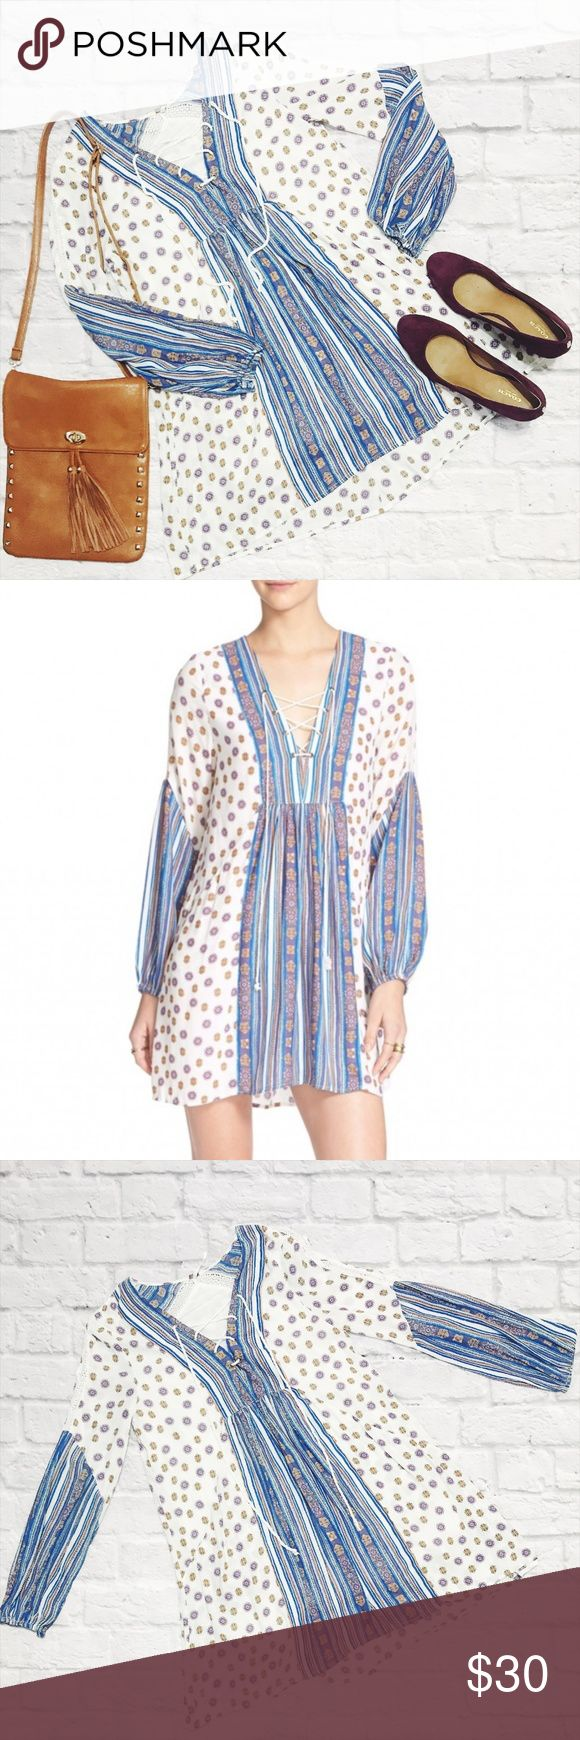 Free People Rain or Shine Festival Dress XS Free People Patterned Festival Dress  condition: EUC (excellent used condition) color: White, Blue - printed fabric fit: bit of oversized look but true to FP extra small other: N/A Free People Dresses Mini